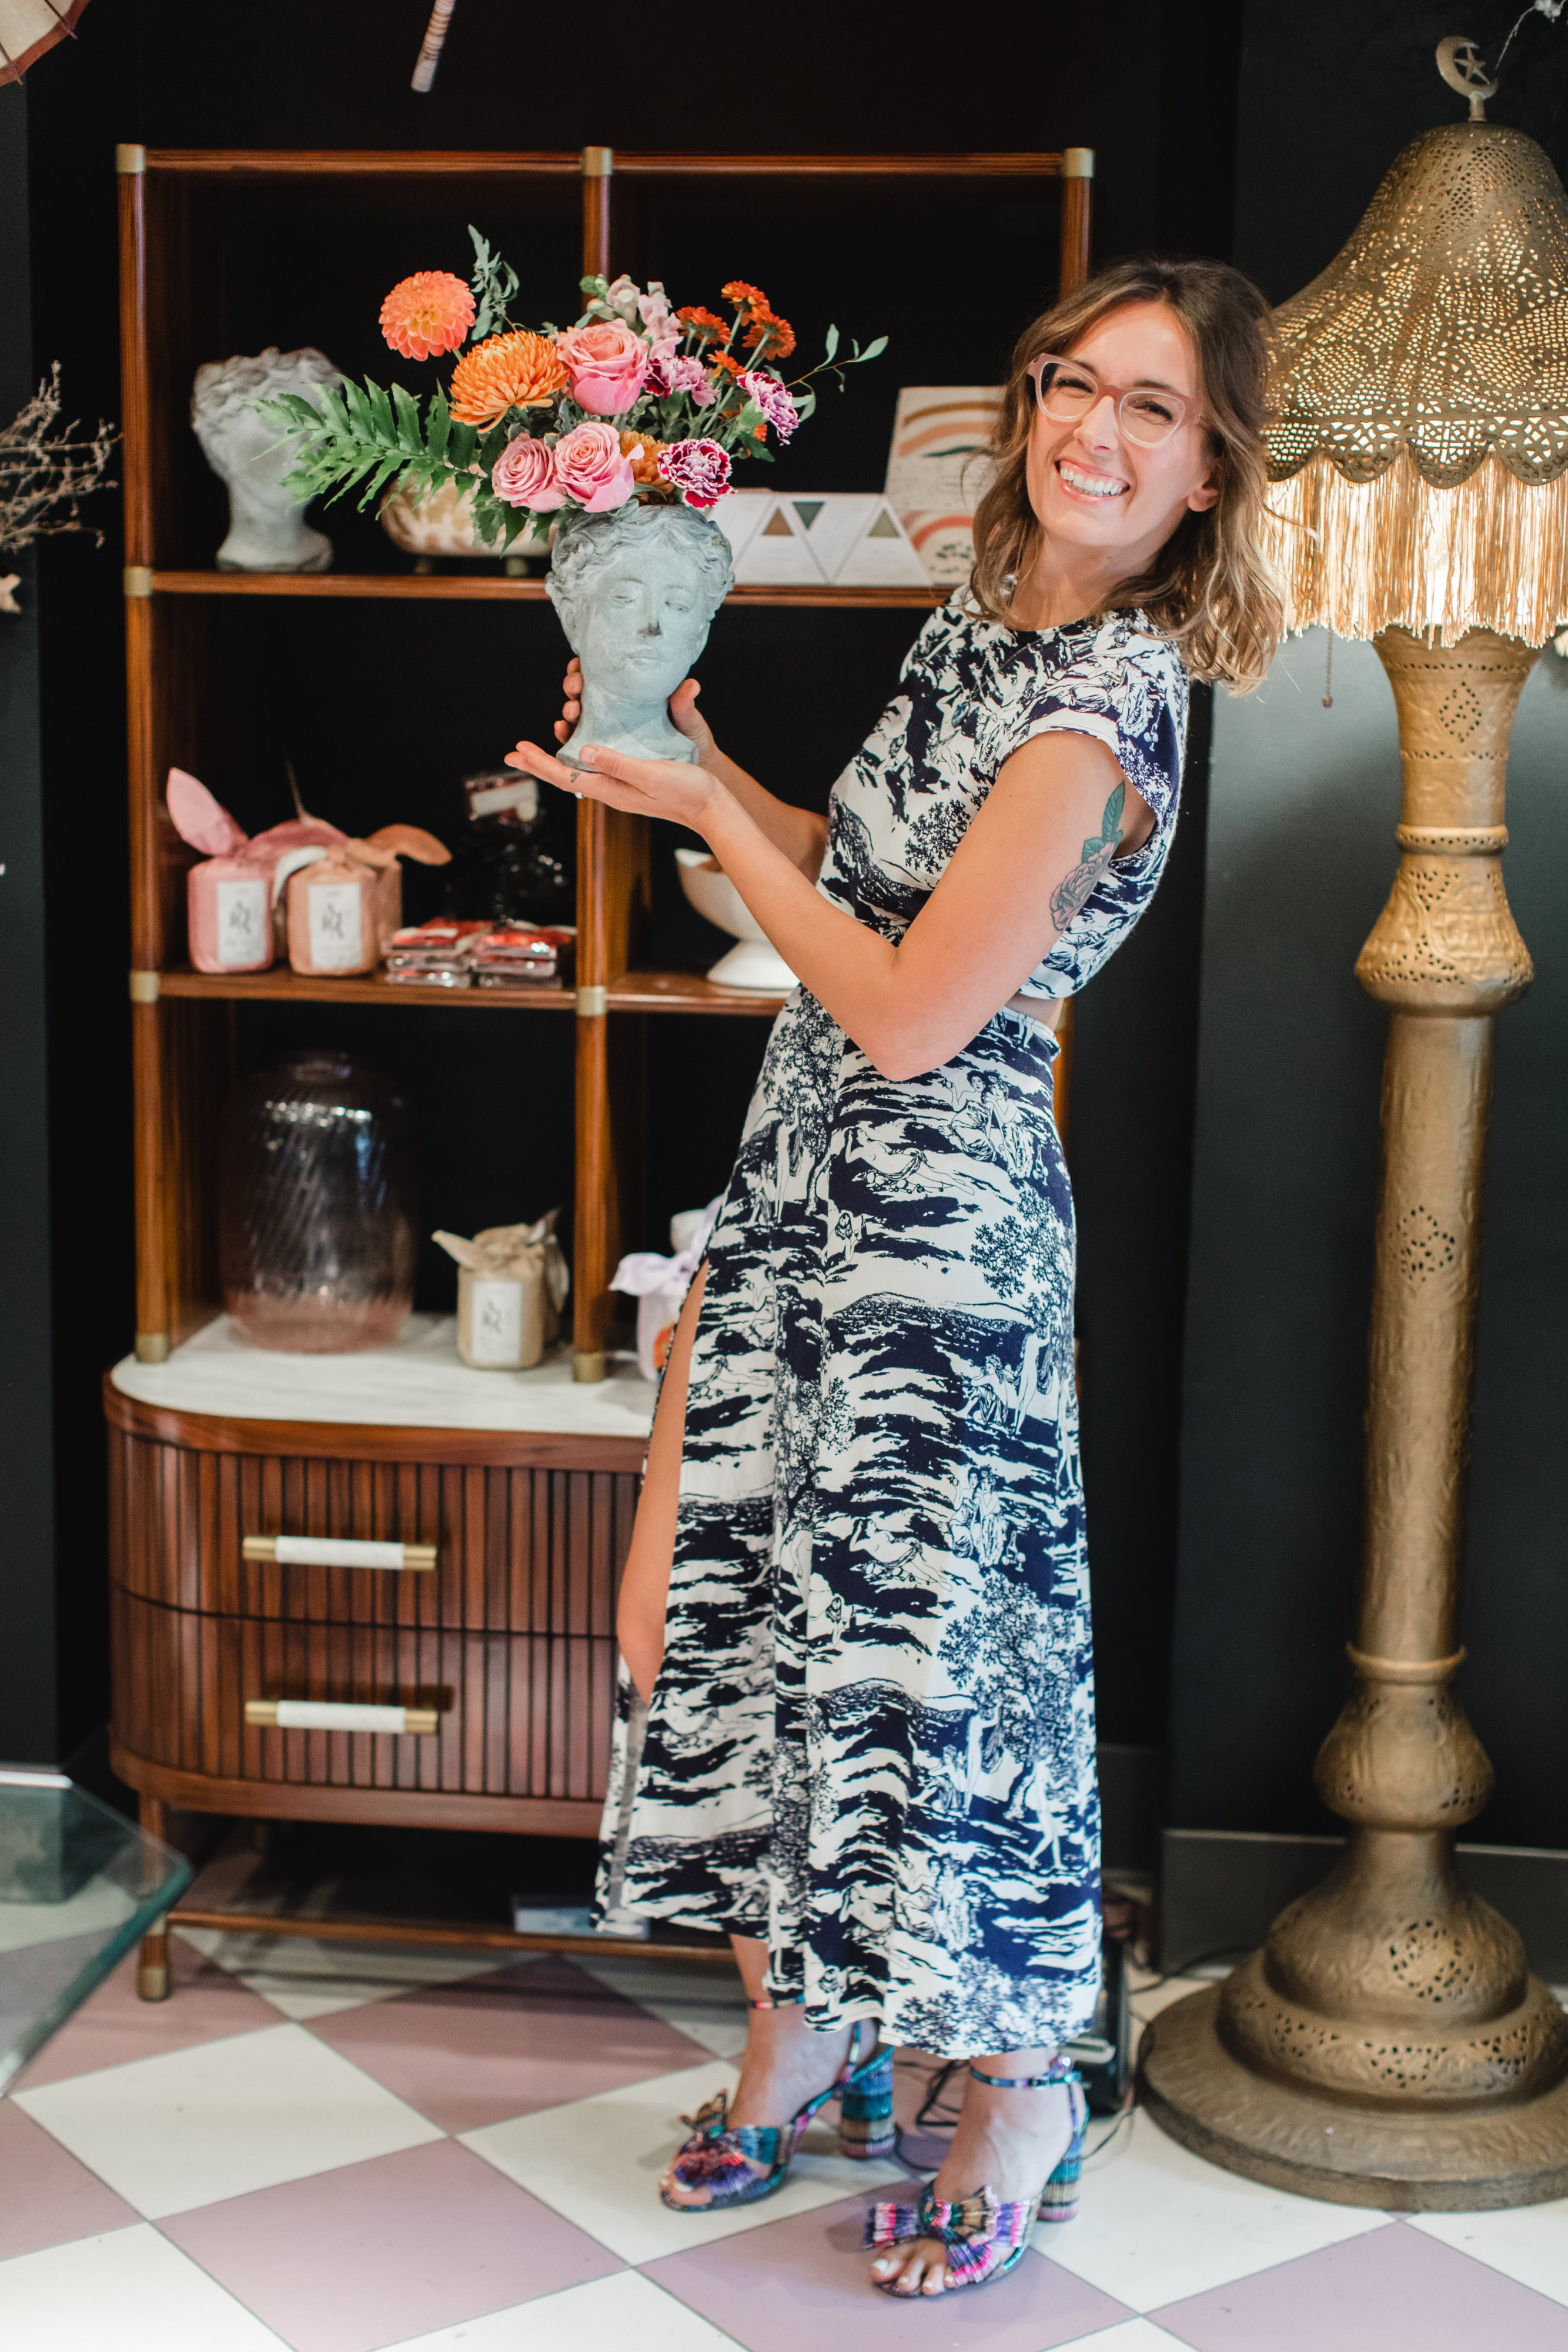 She Loves Me Owner Holley Simmons with the Aphrodite vessel. Photo by Maddie Kaye Photo.